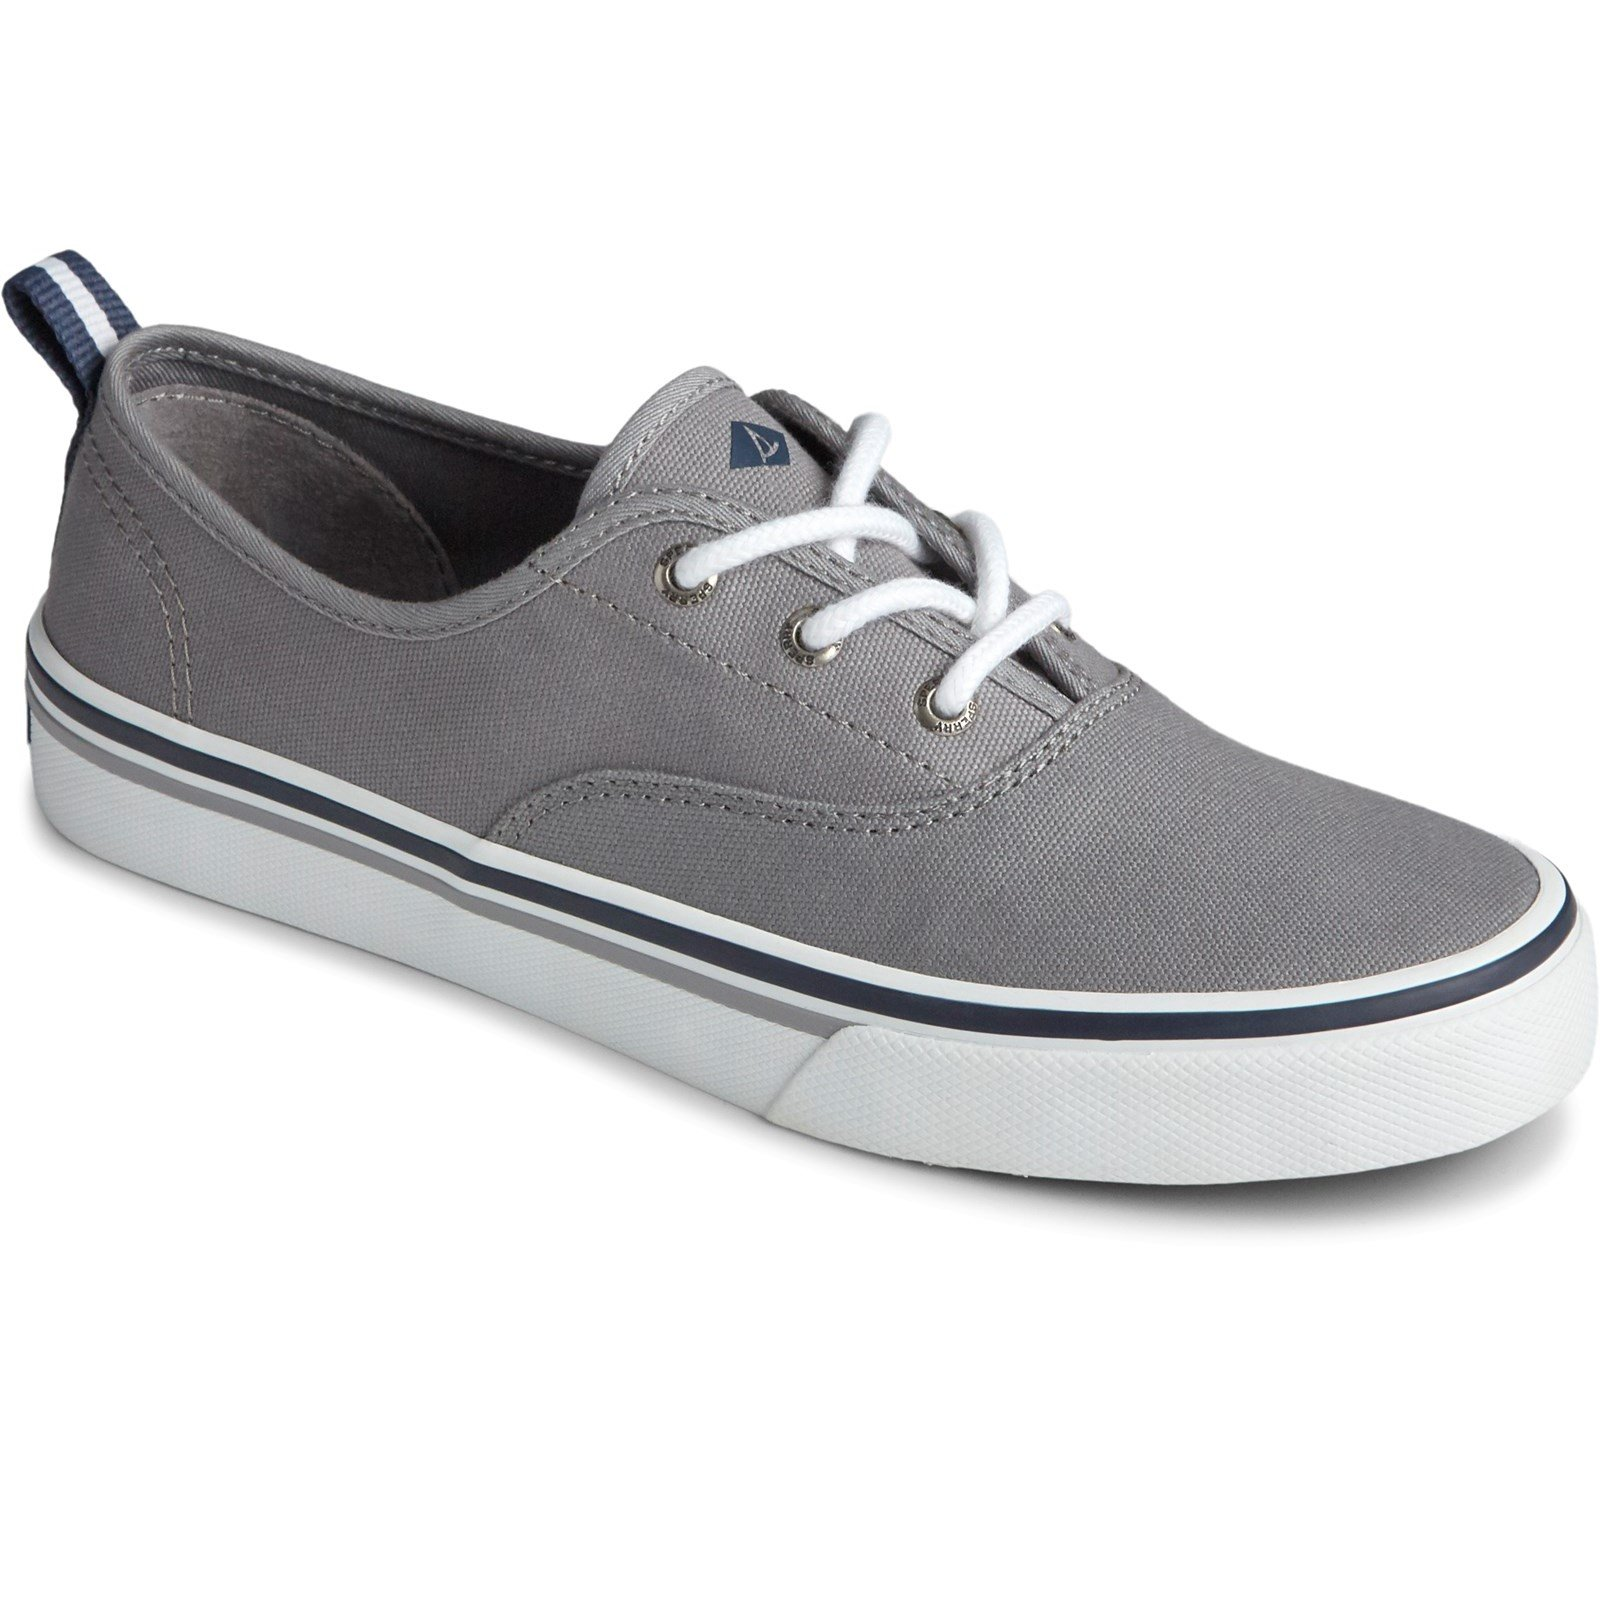 Sperry Women's Crest CVO Trainers Various Colours 32936 - Grey 5